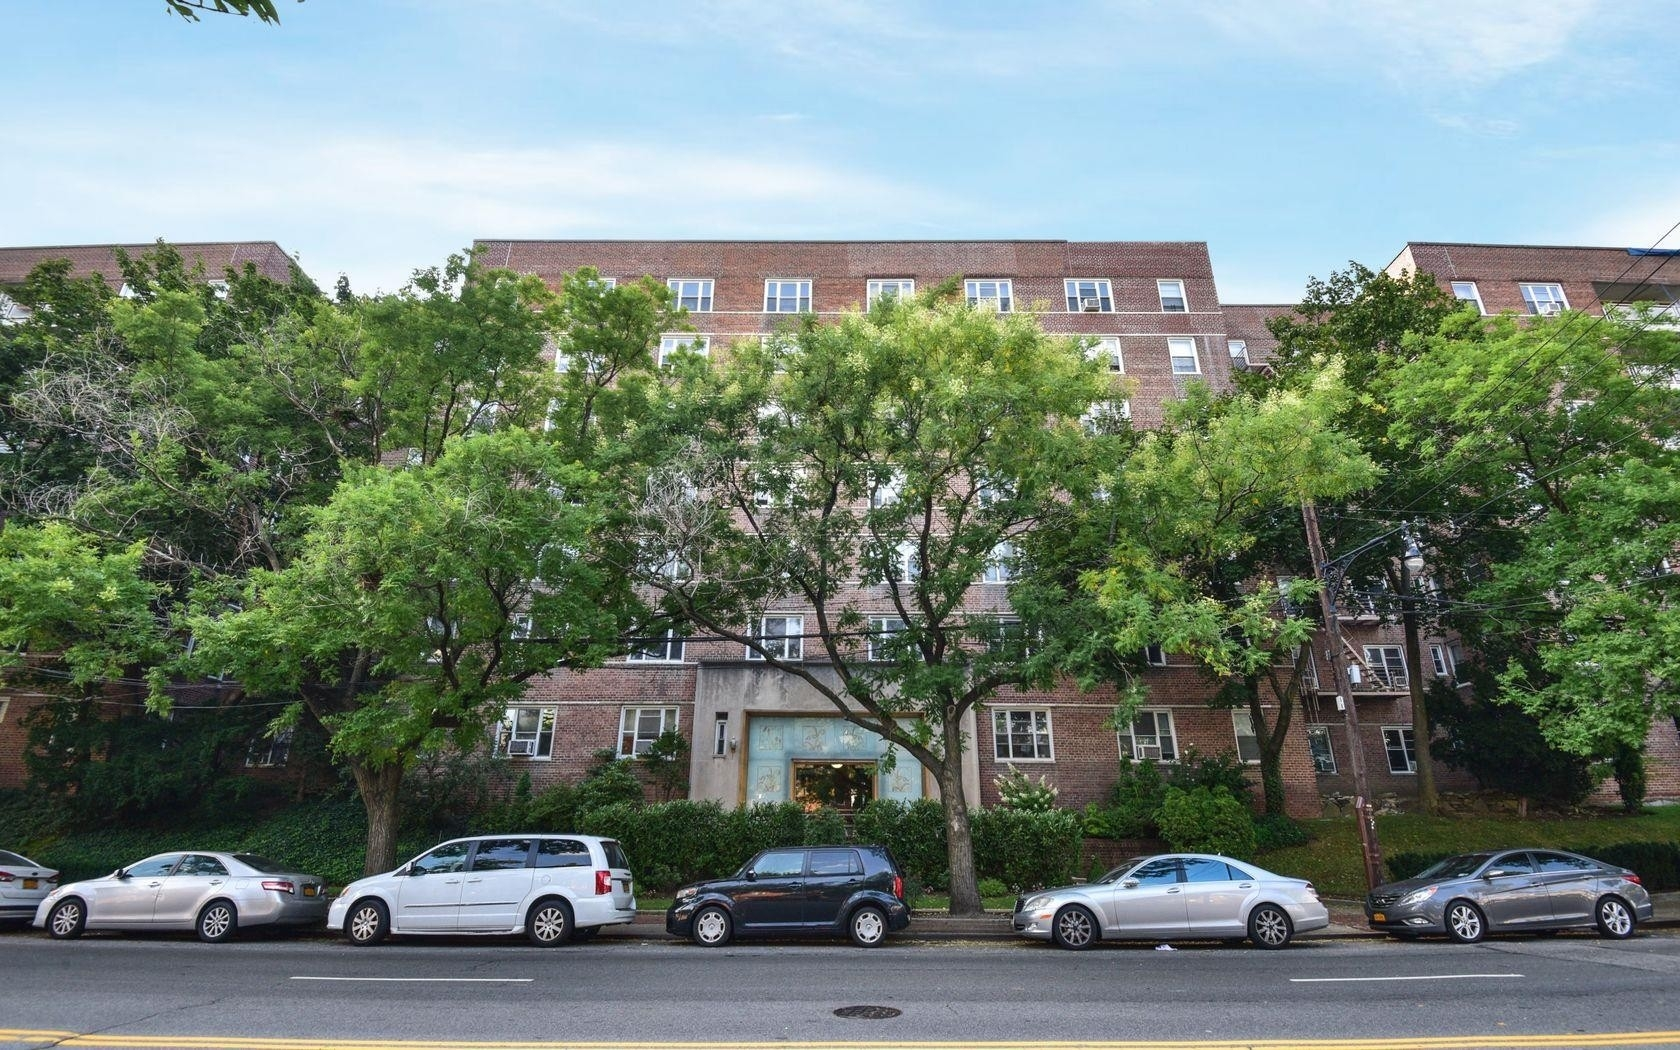 1. 建於5601 Riverdale Avenue, North Riverdale, Bronx, NY